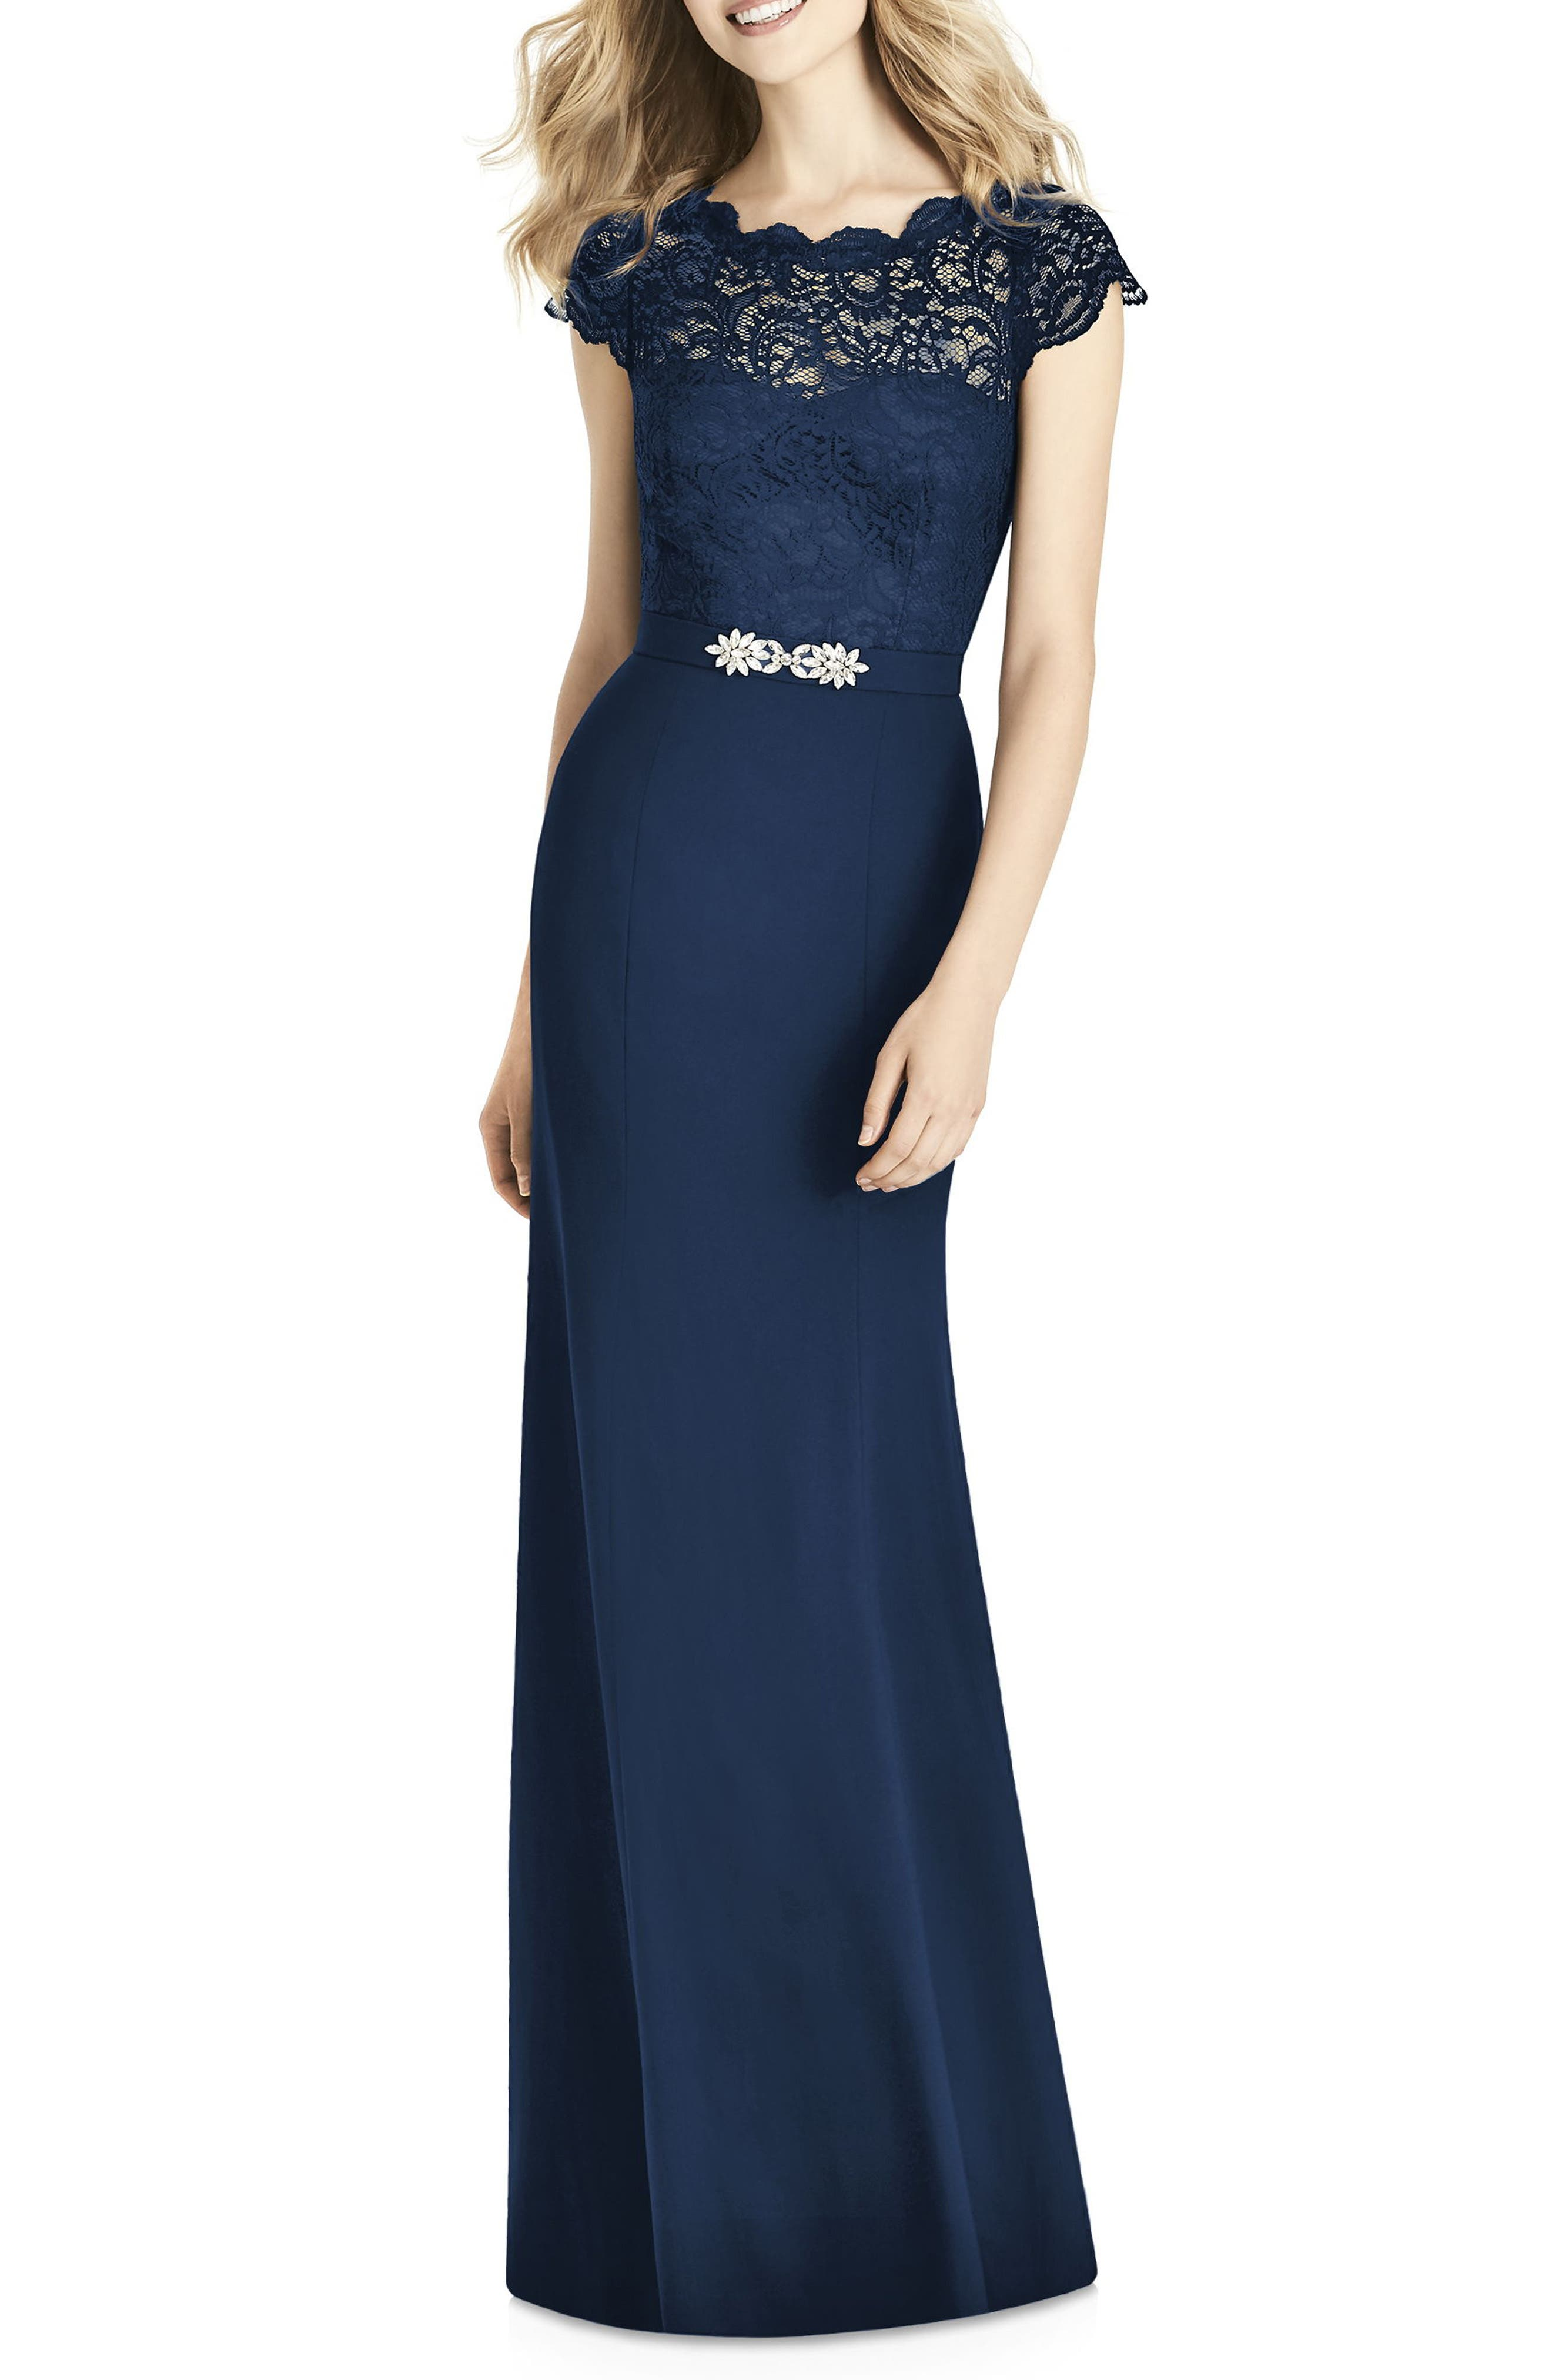 Red bridesmaid wedding party dresses nordstrom jenny packham lace crepe sheath gown ombrellifo Image collections